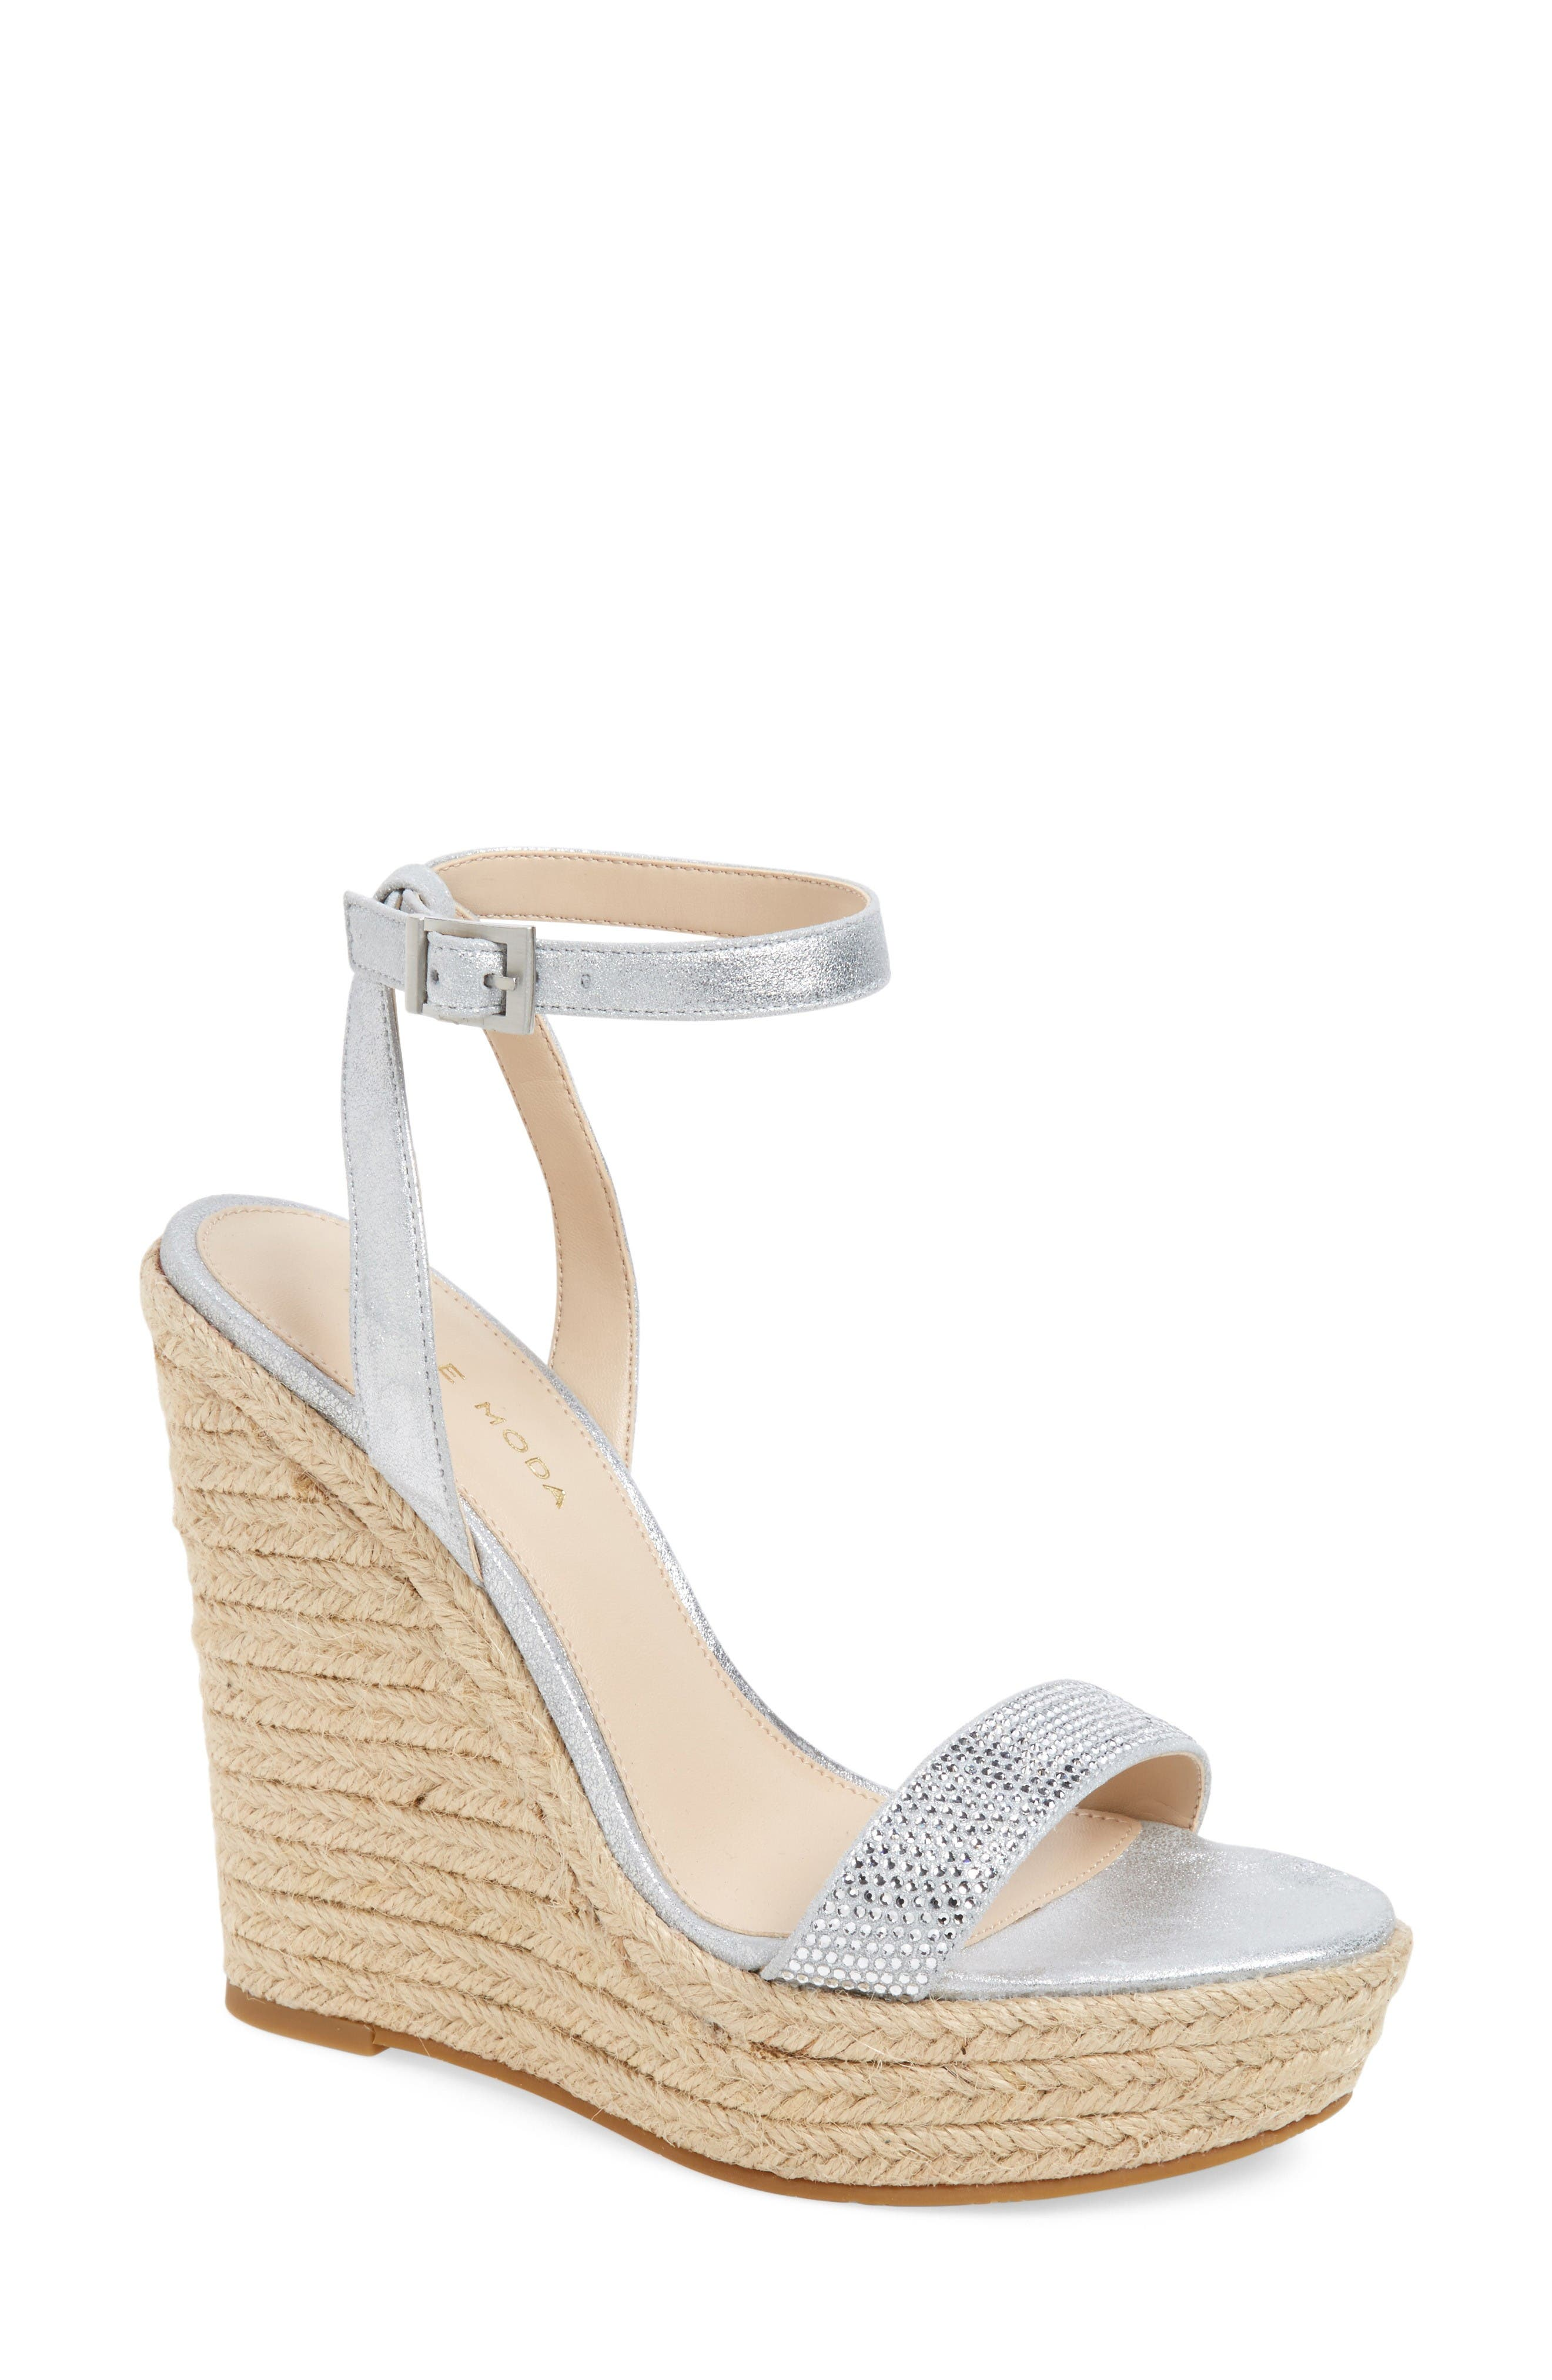 Pelle Moda Only Embellished Platform Wedge (Women)